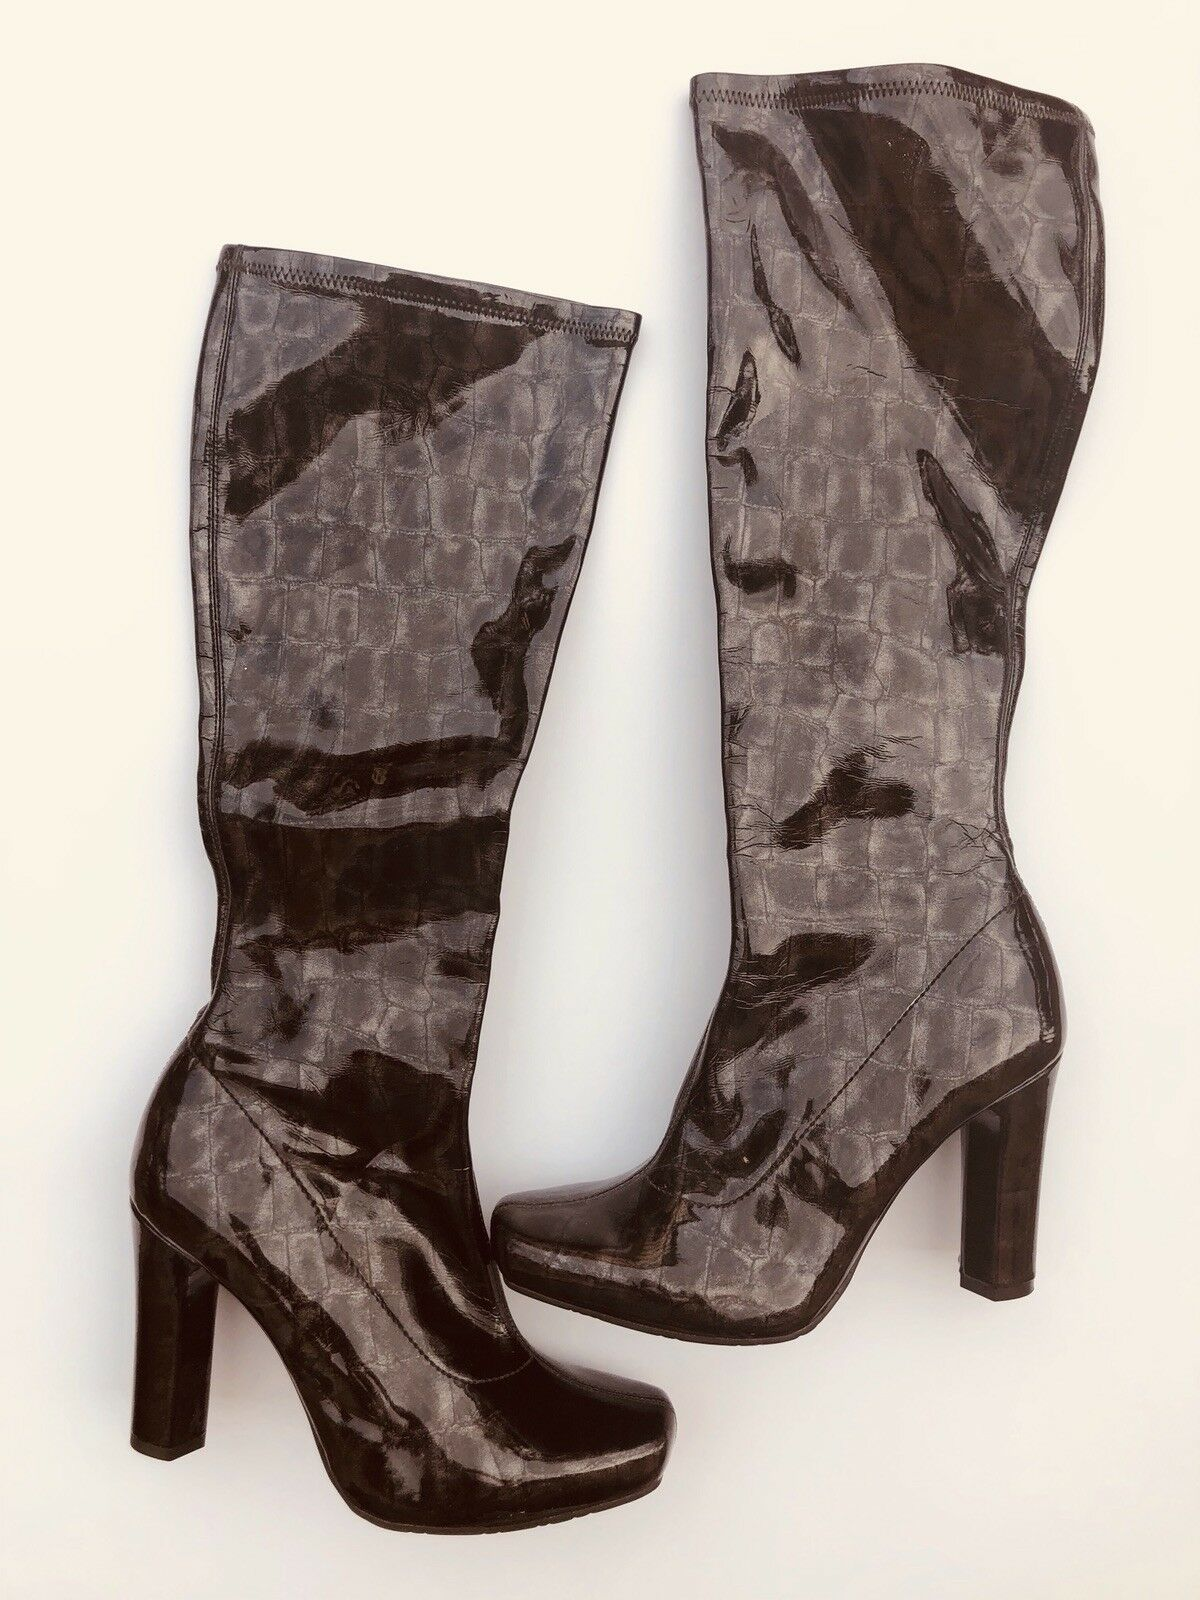 BCBGirls Donna's Shiny Brown high heels boots shoes 8 M New